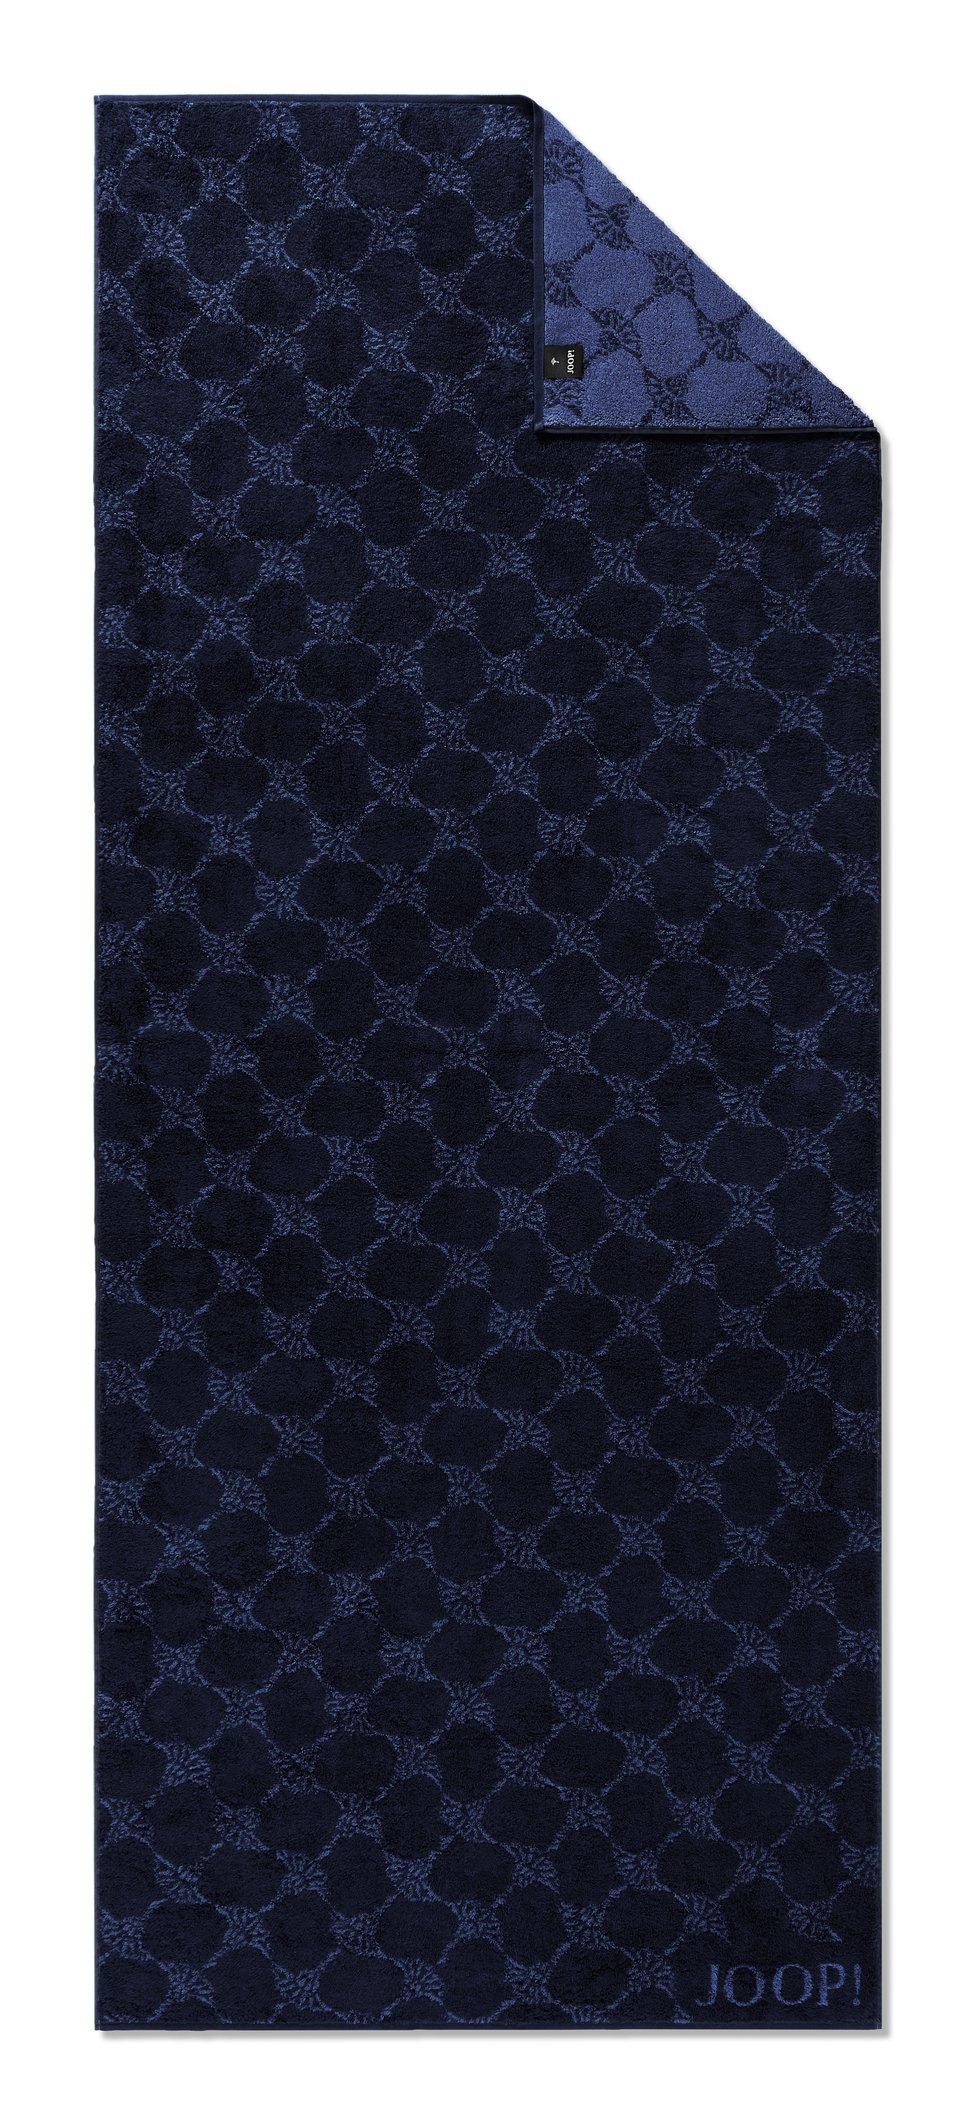 JOOP! Cornflower 1611-14 Navy Saunatuch 80x200 cm Kollektion 2020